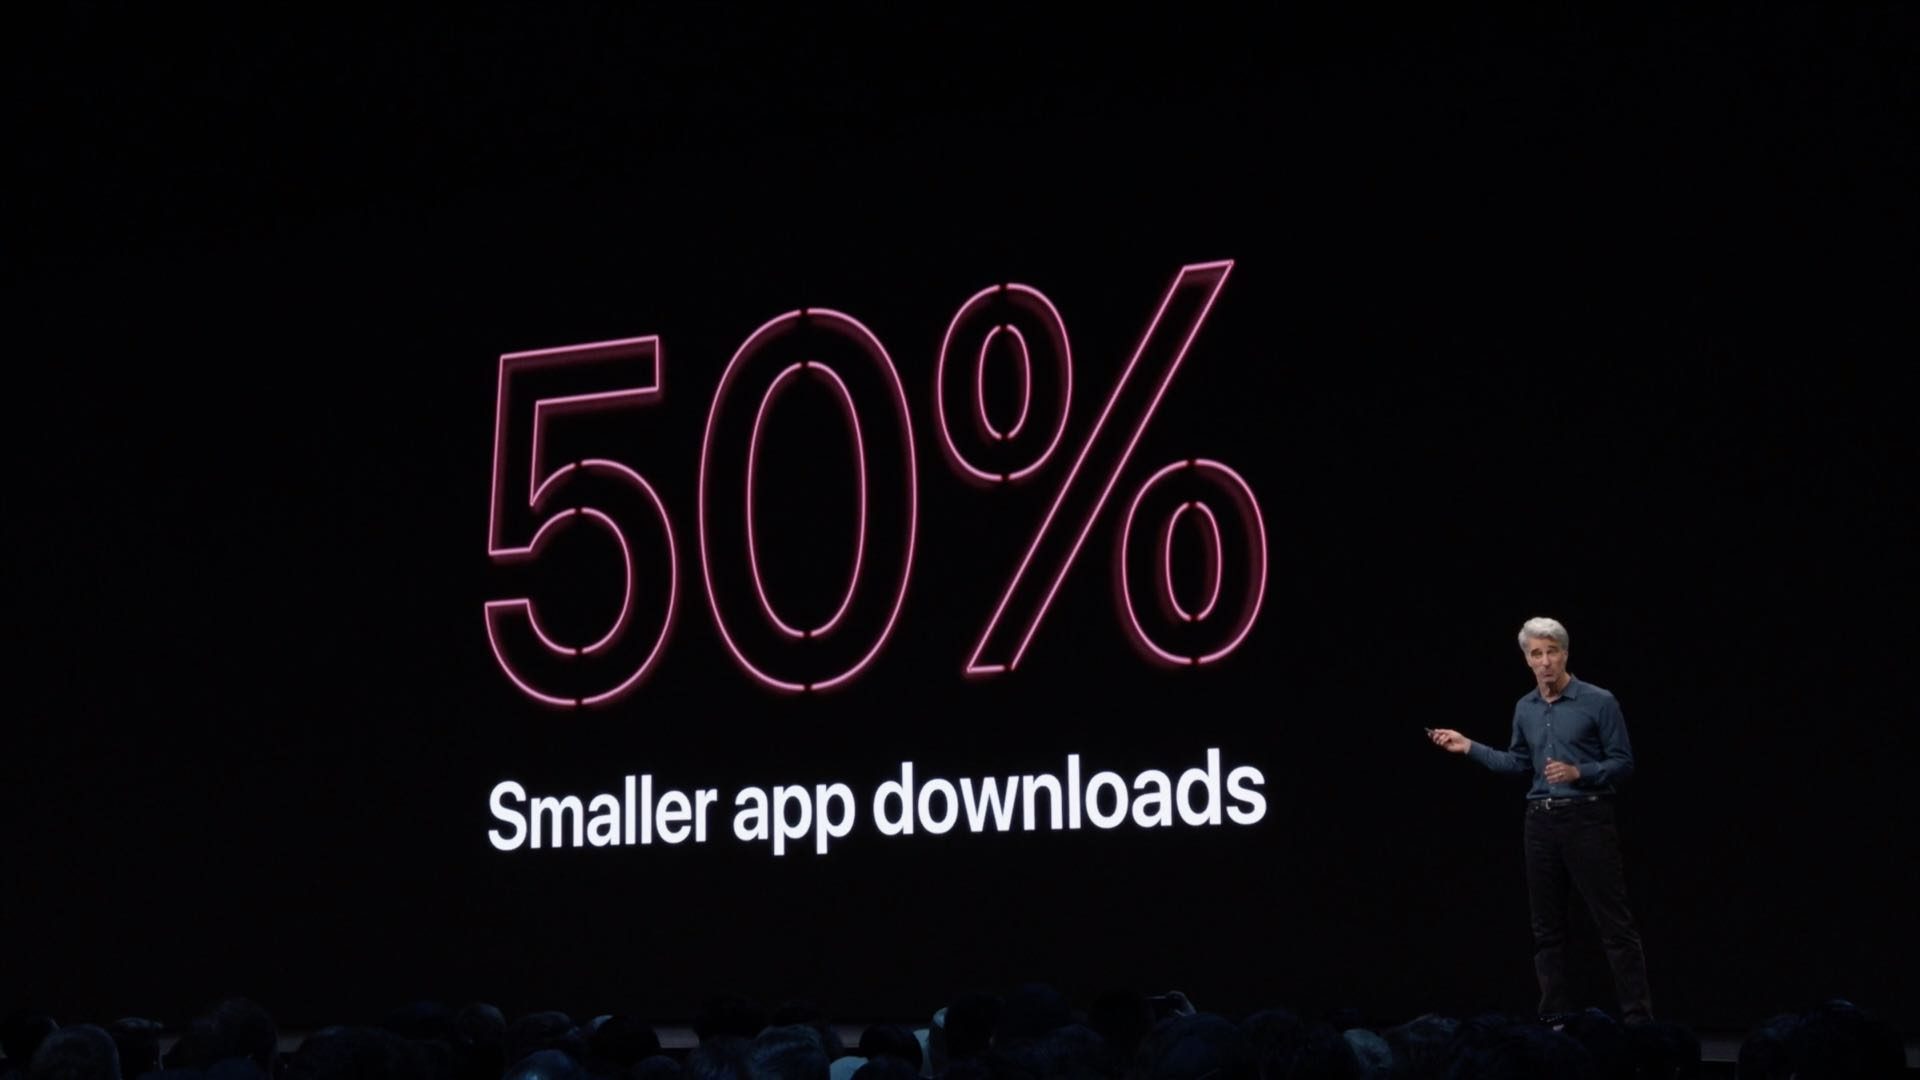 WWDC 2019 slide: 50 percent smaller app downloads